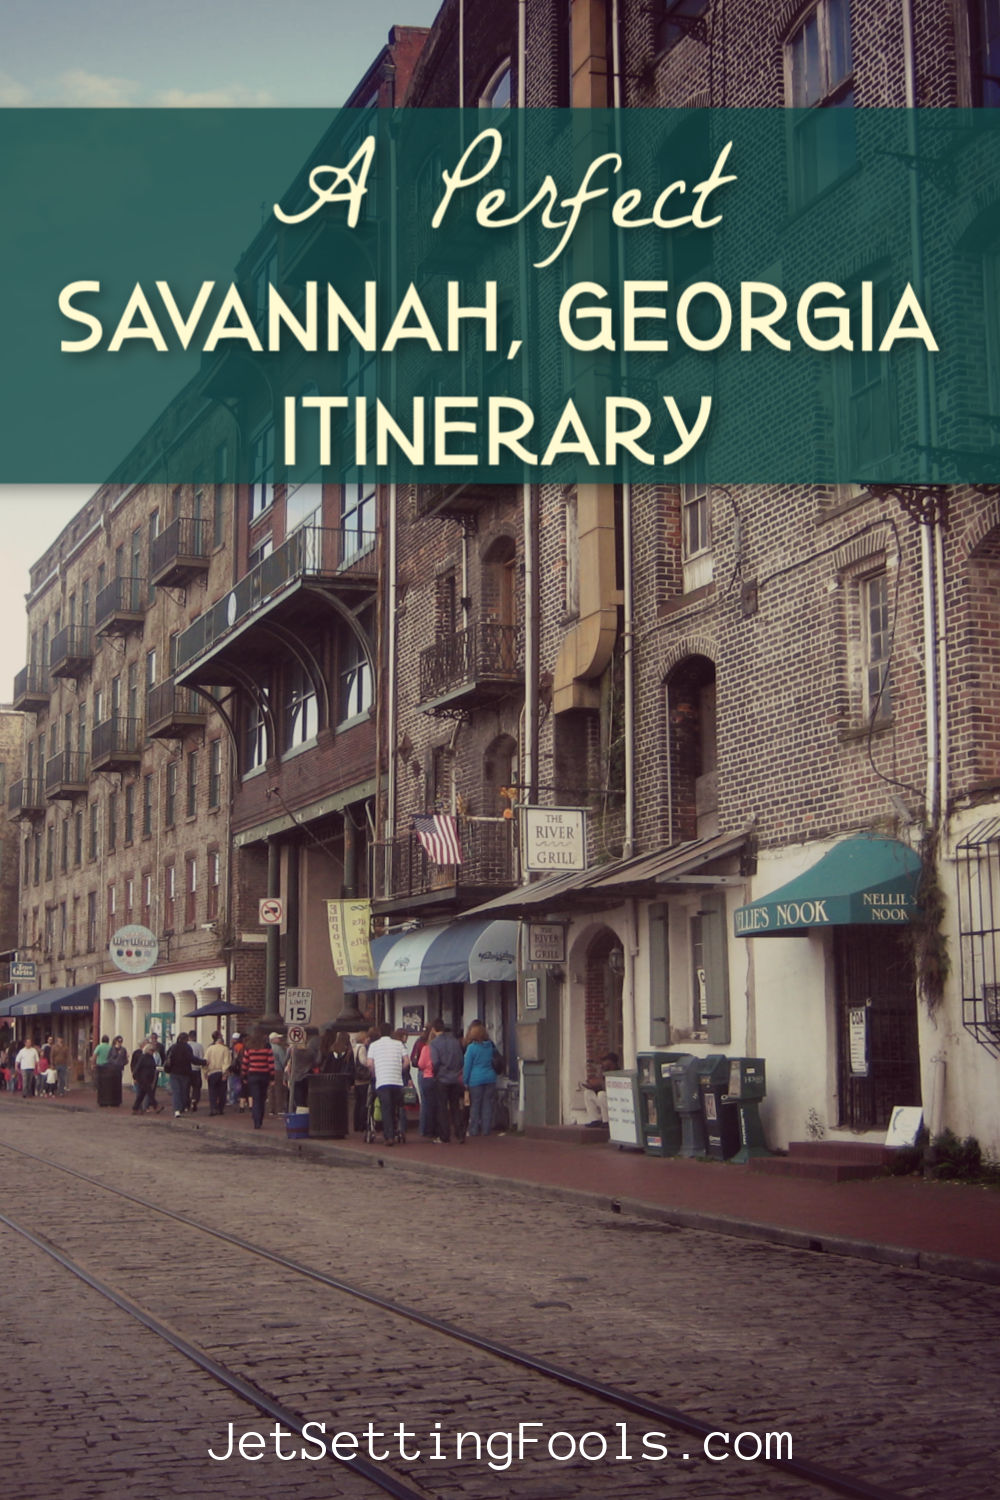 Savannah Itinerary by JetSettingFools.com